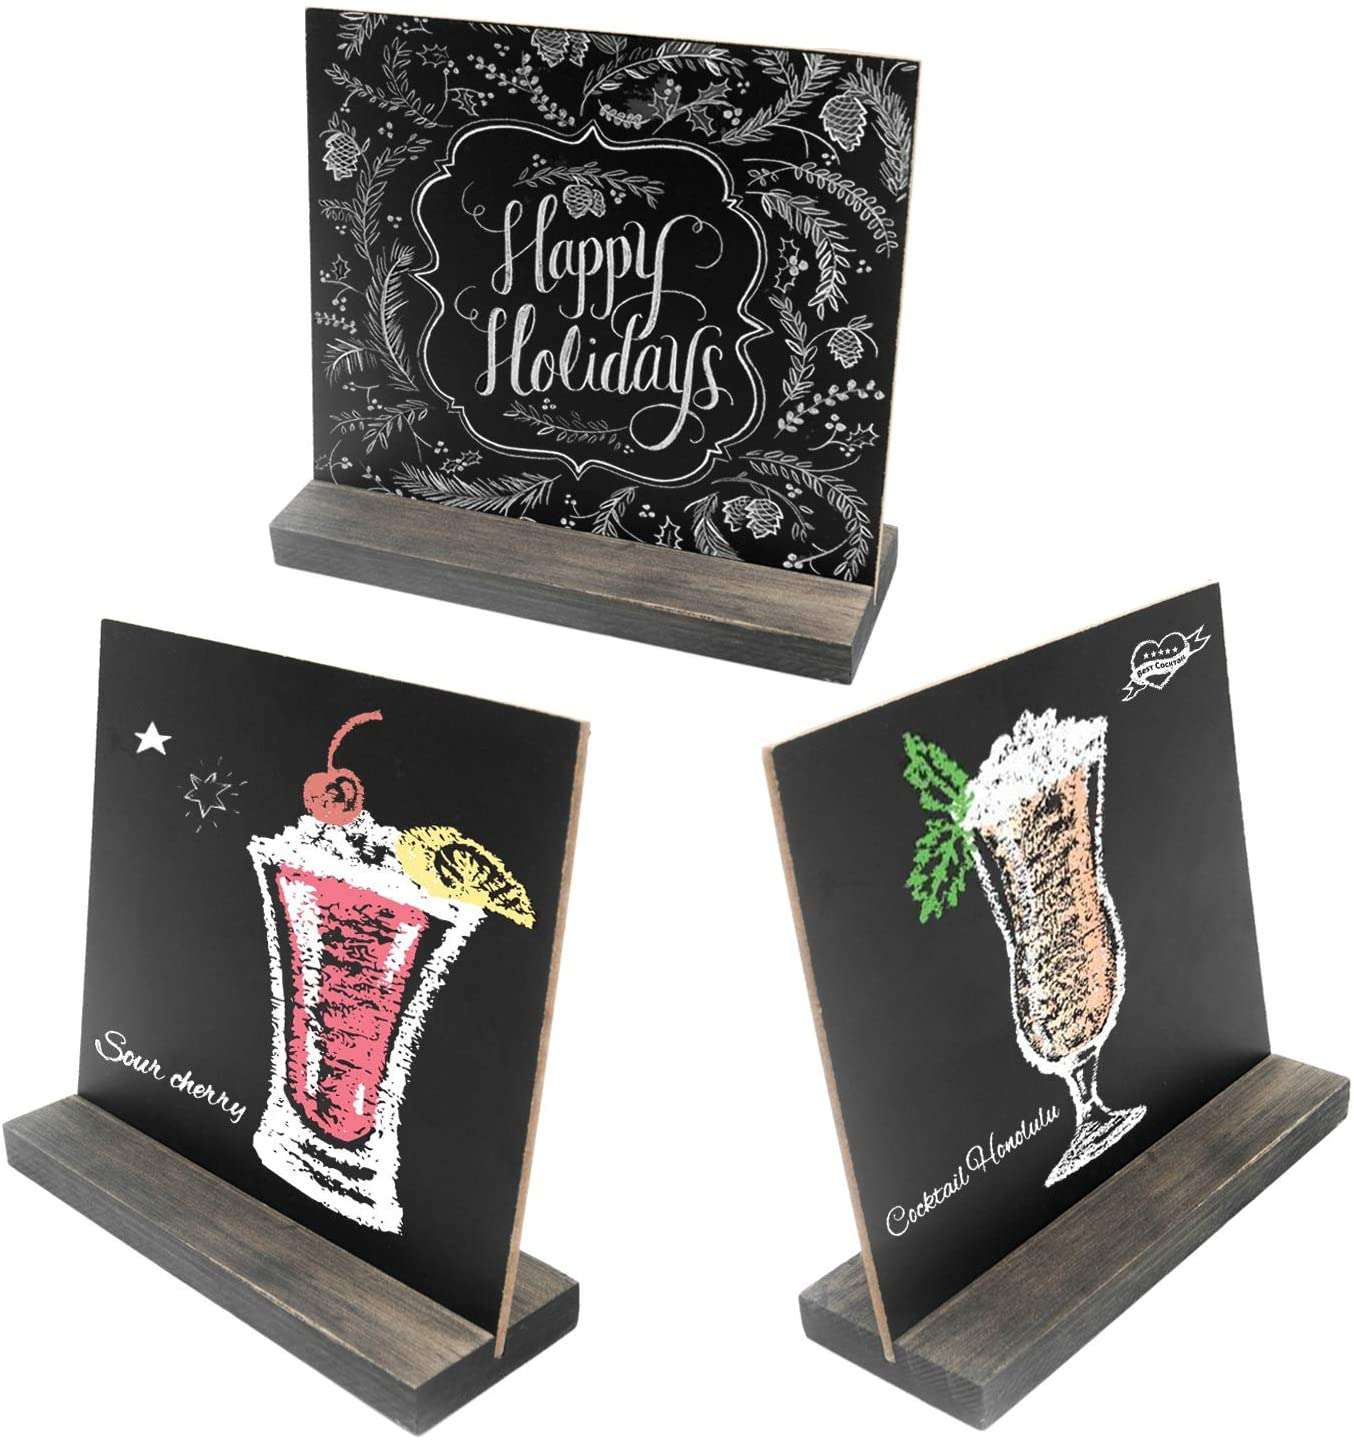 5 X 6 Inch Mini Tabletop Chalkboard Signs with Vintage Style Wood Base Stands, Set of 3